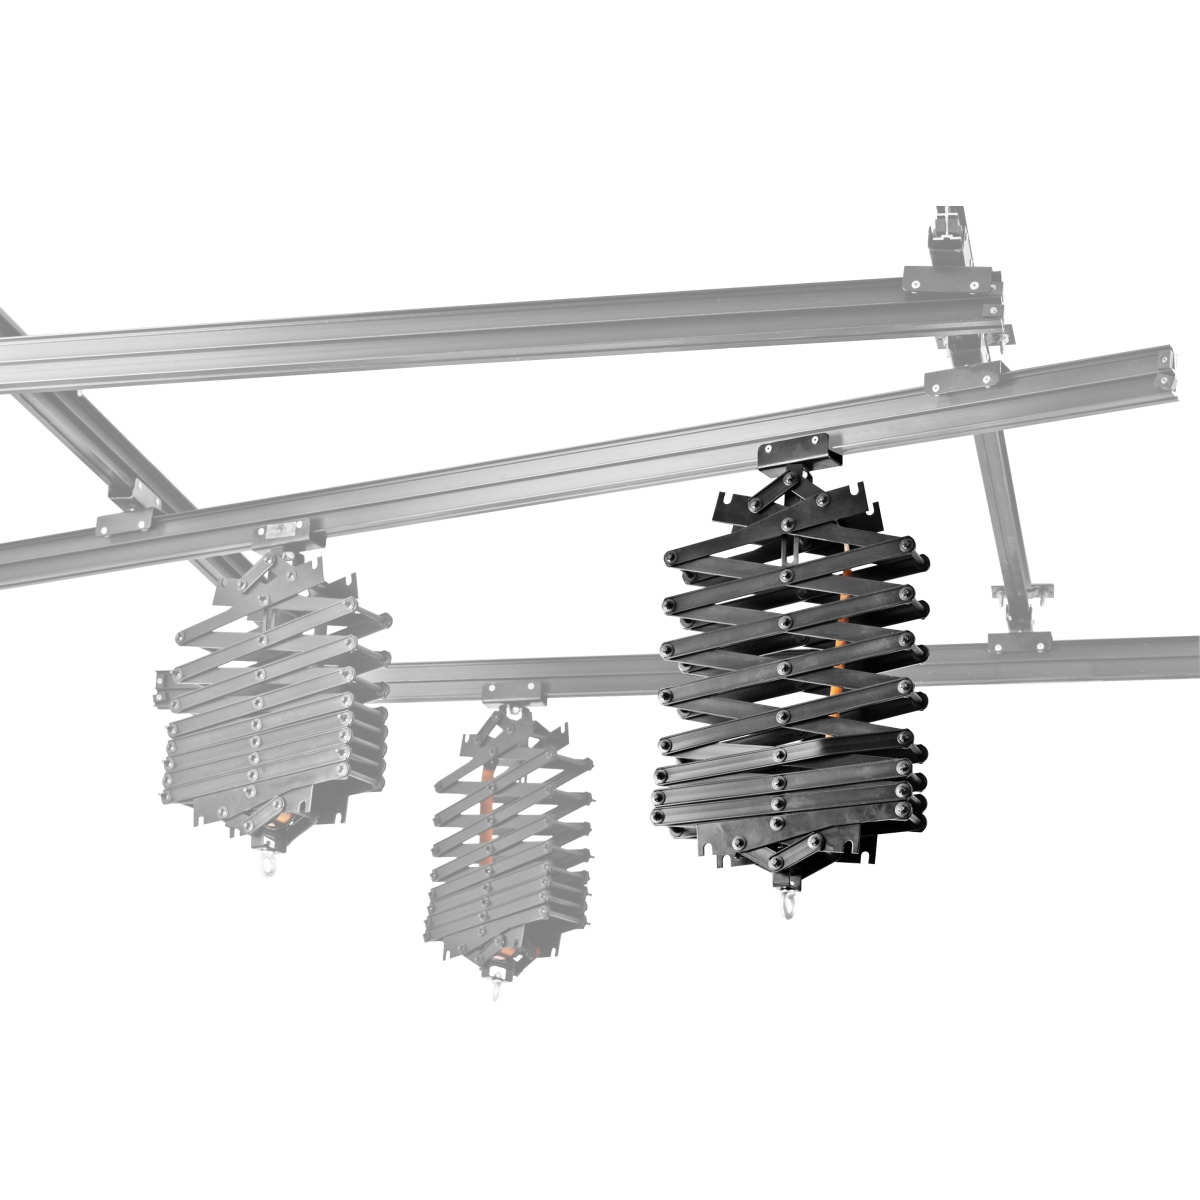 Walimex Pantograph for Ceiling Rail System